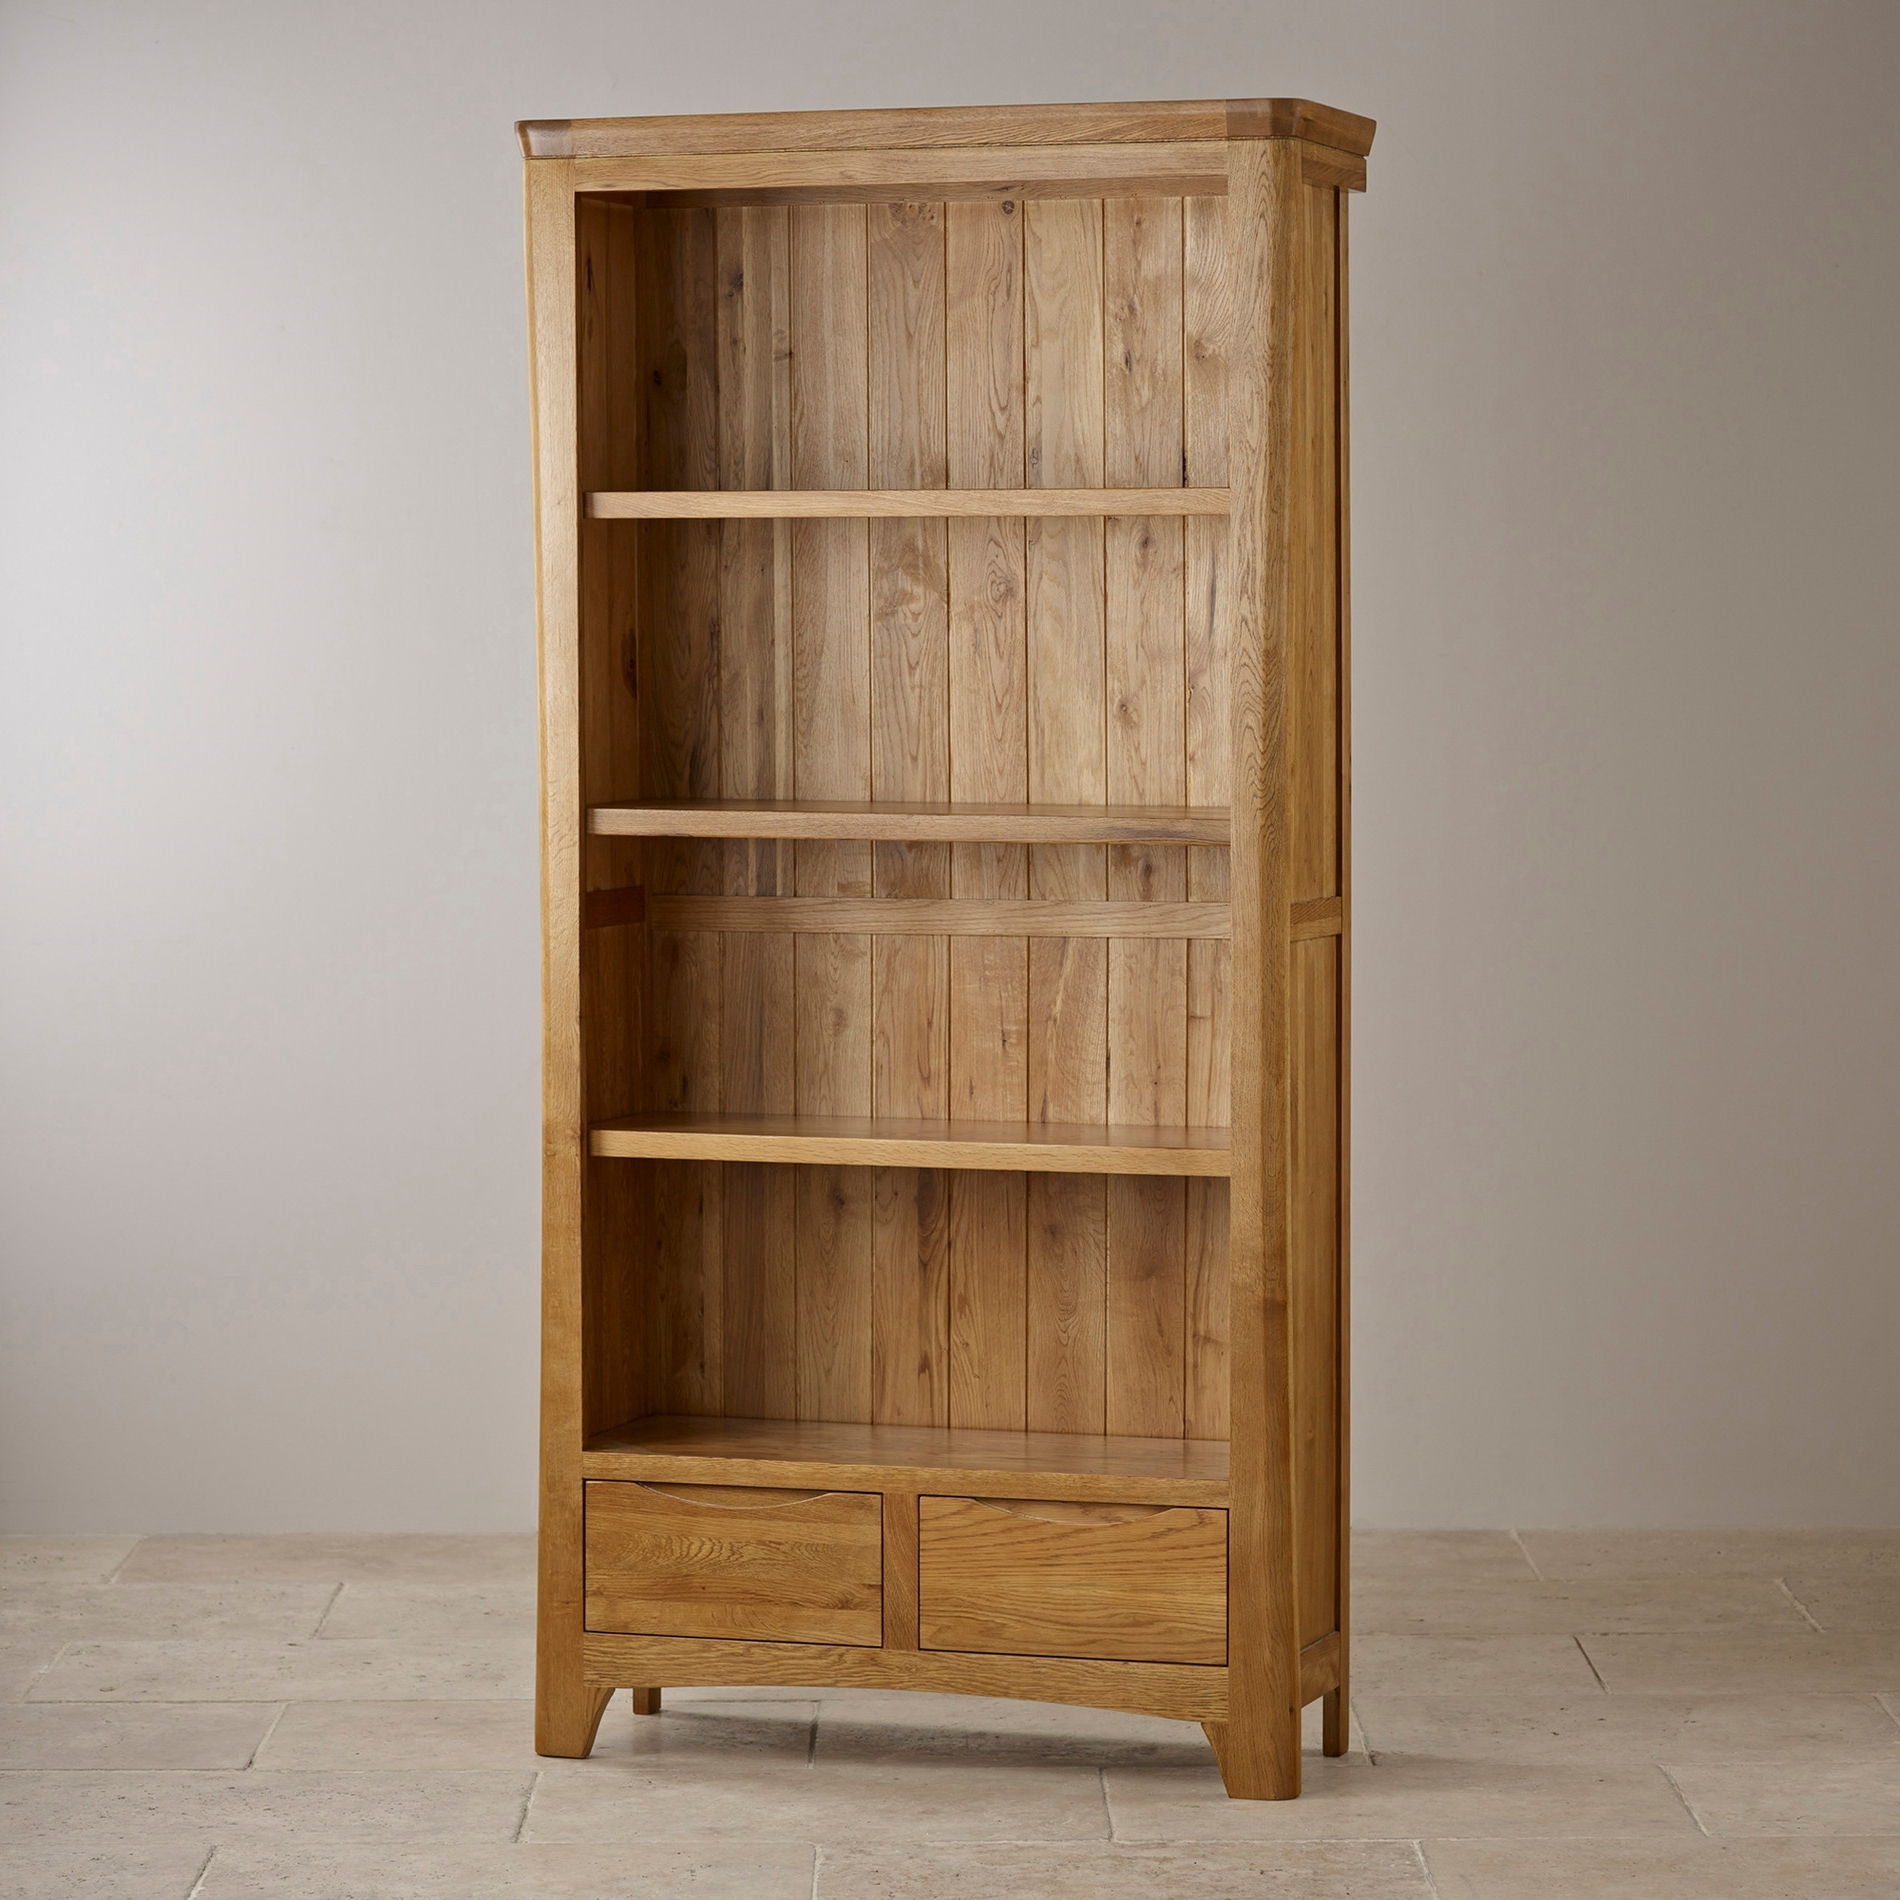 Brilliant Ideas Of Wooden Bookcases Uk Images For Your Real Wood With Most Current Real Wood Bookcases (View 12 of 15)